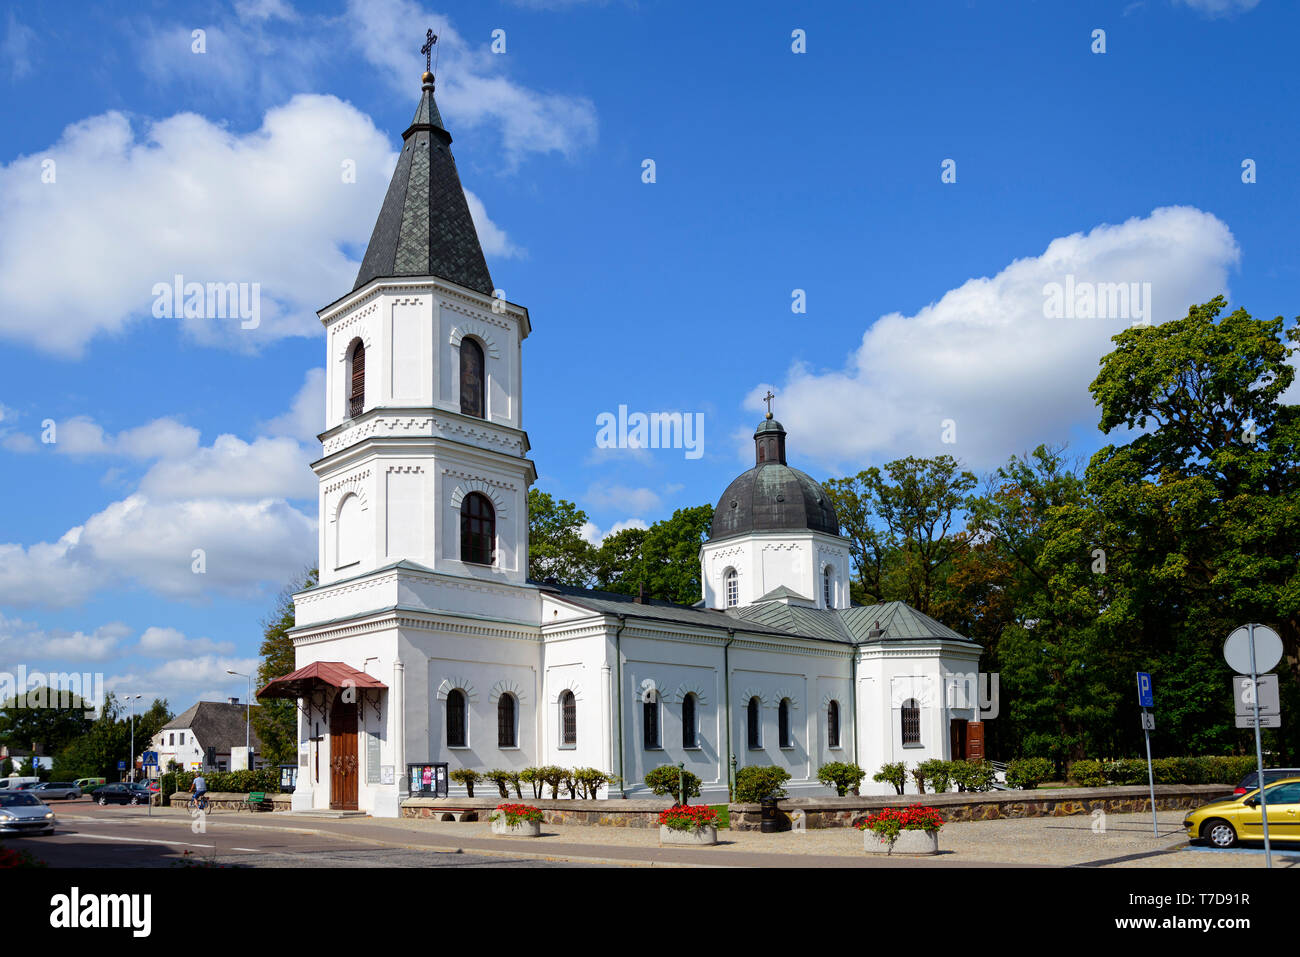 Sacred heart church, Suwalki, Podlasie, Poland Stock Photo